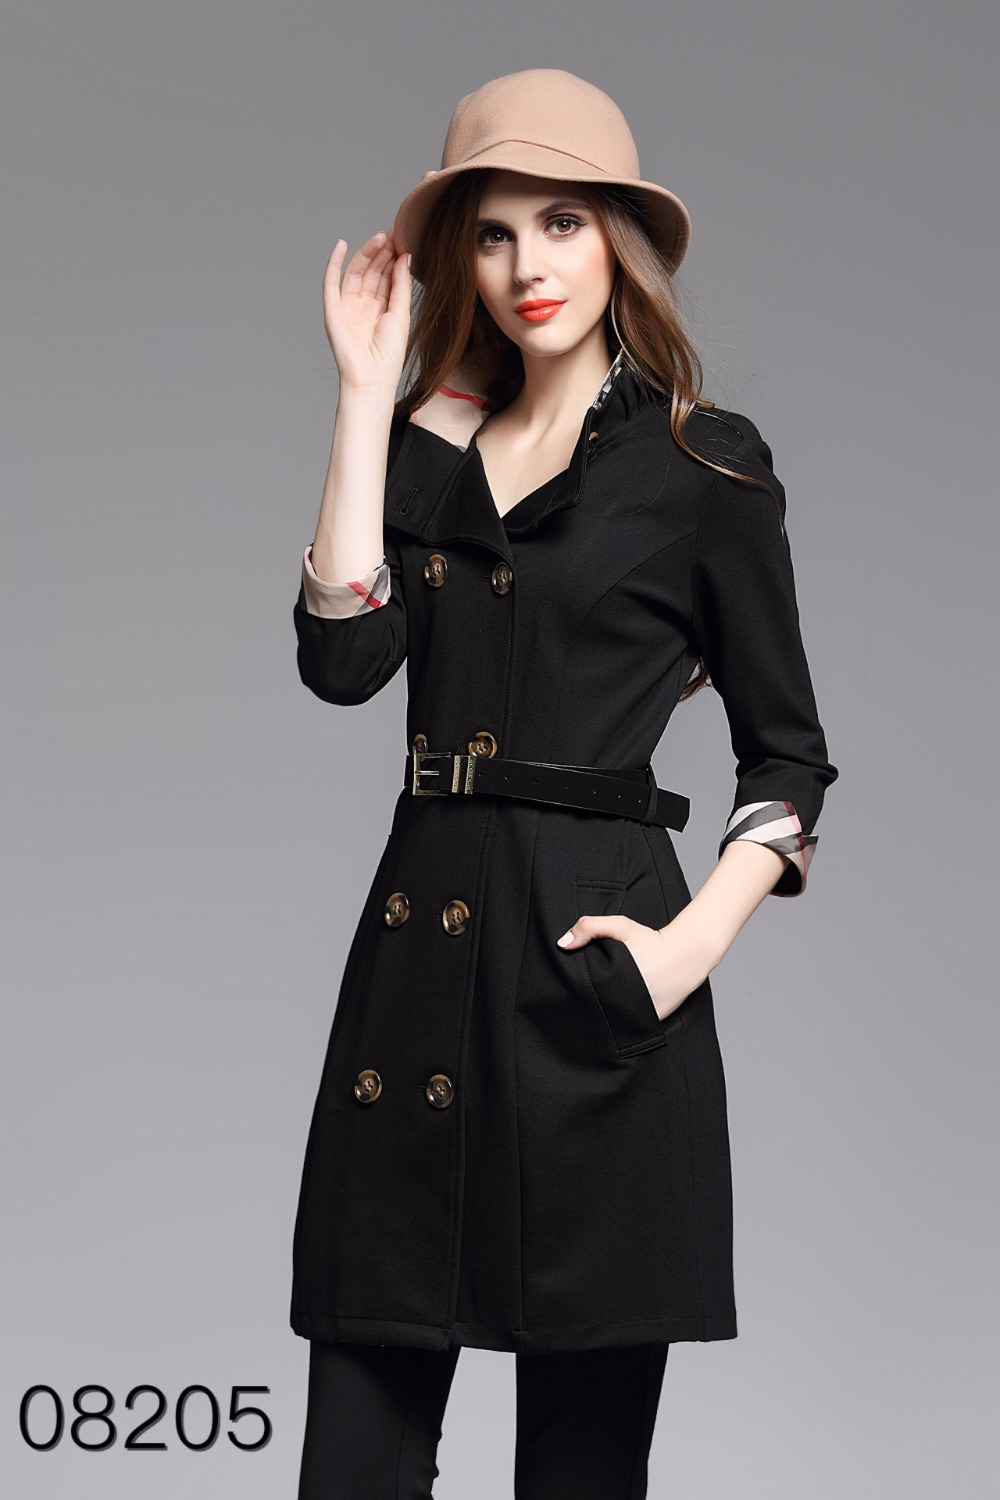 1e5529c7b84f7 2018 New Roman cloth British Style Patchwork Double Breasted Windbreaker  Spring Fall Slim Women Trench Coat Casual Plaid Autumn-in Trench from  Women s ...